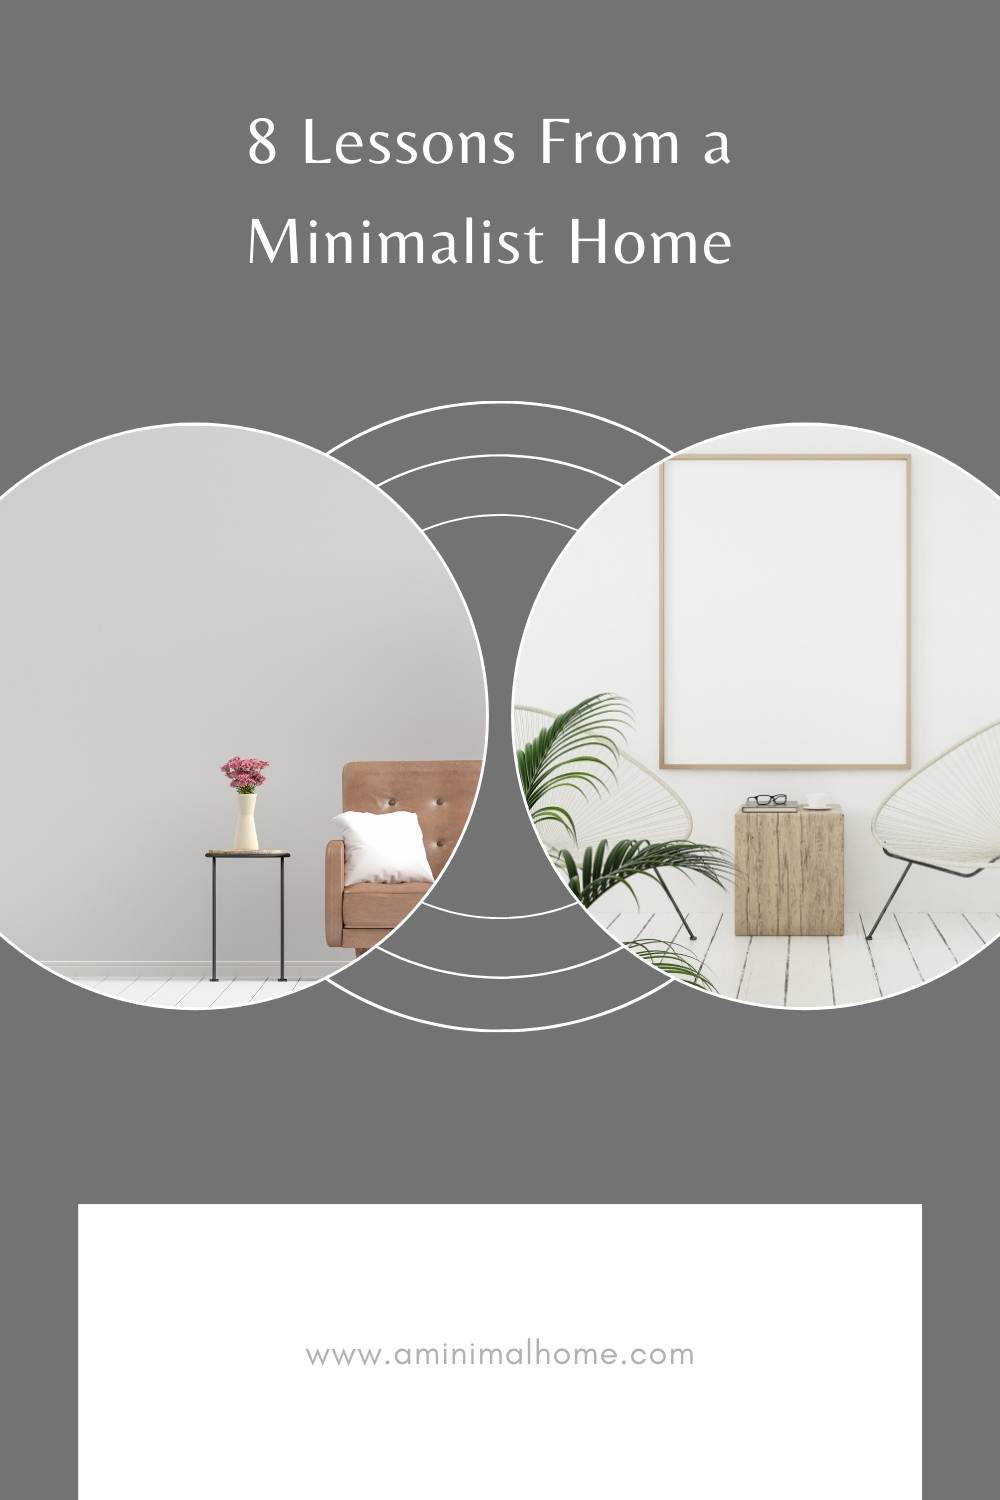 8 lessons from a minimalist home